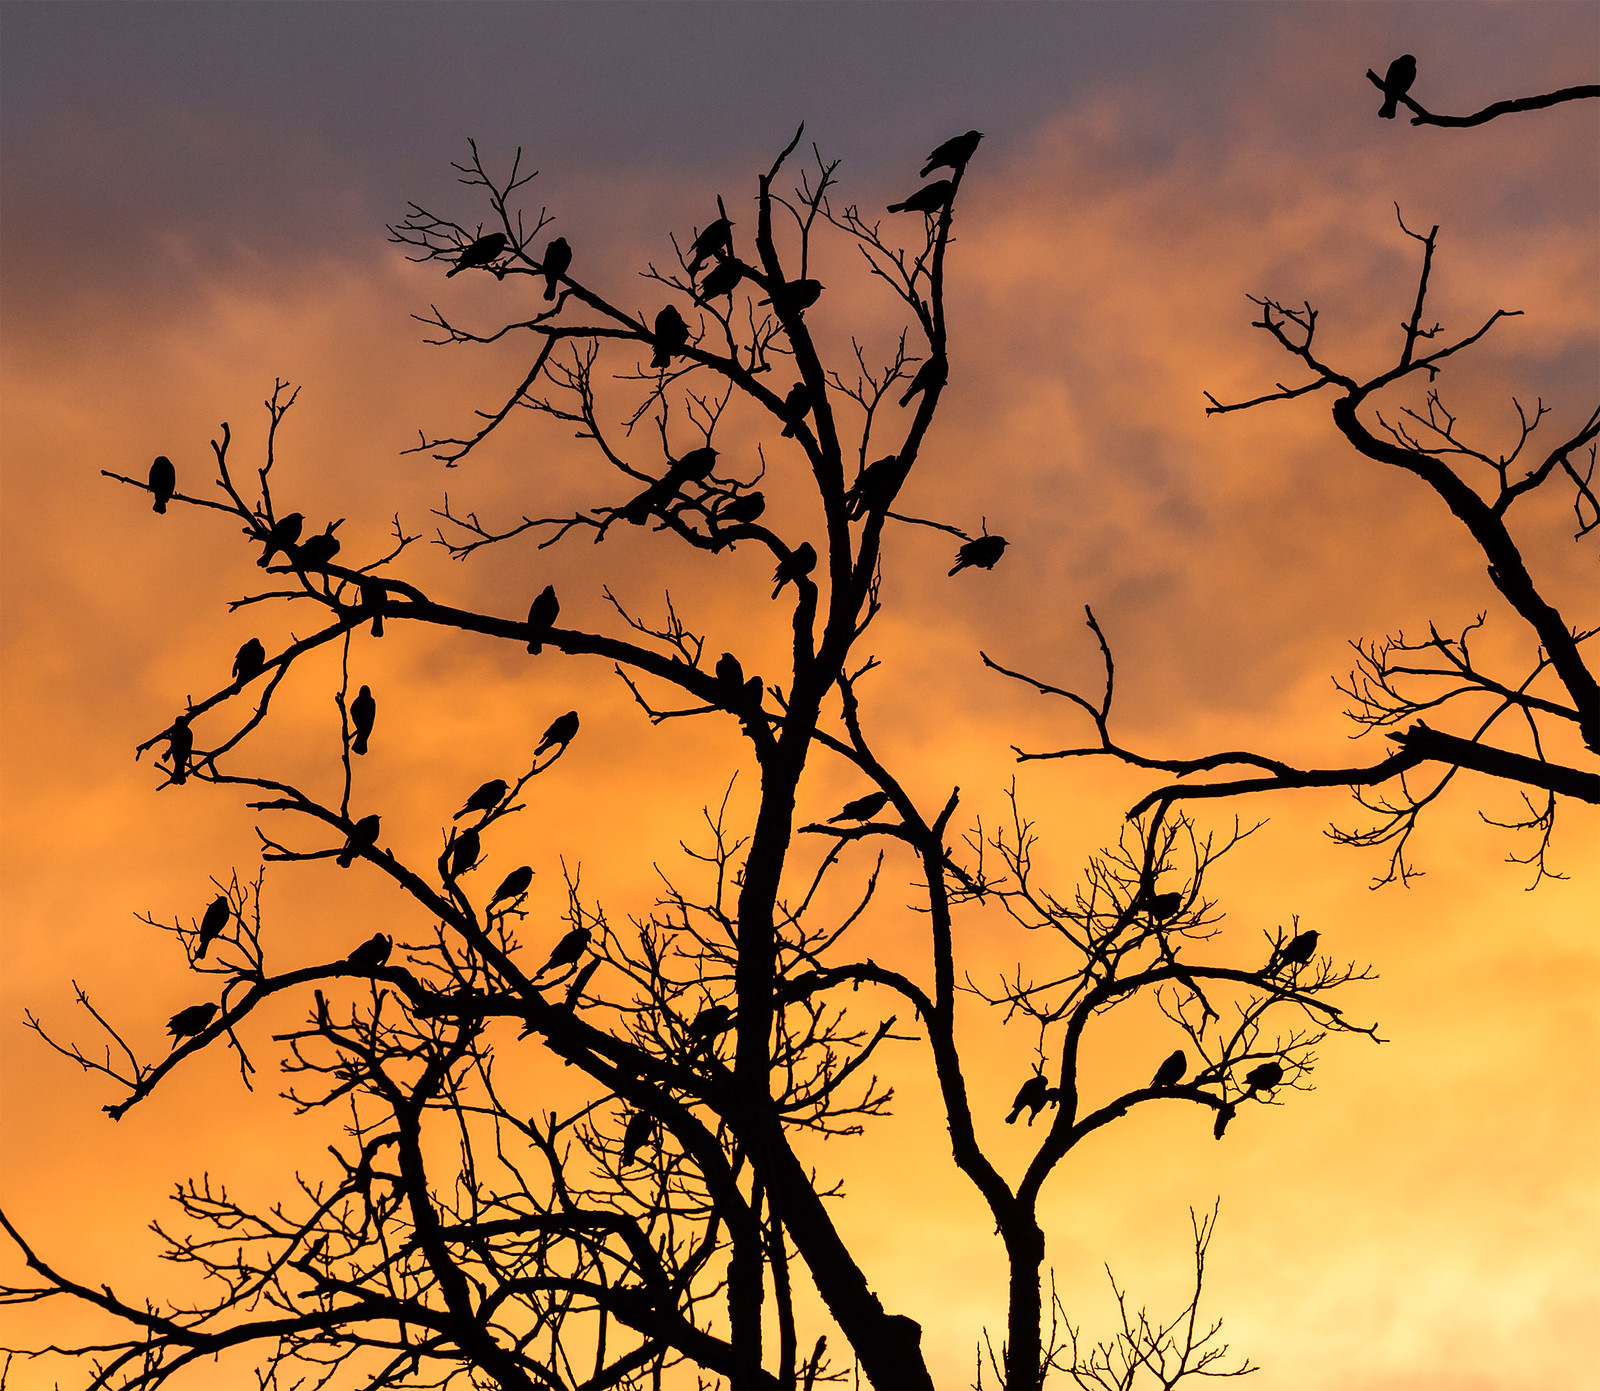 silhouetted birds in a tree